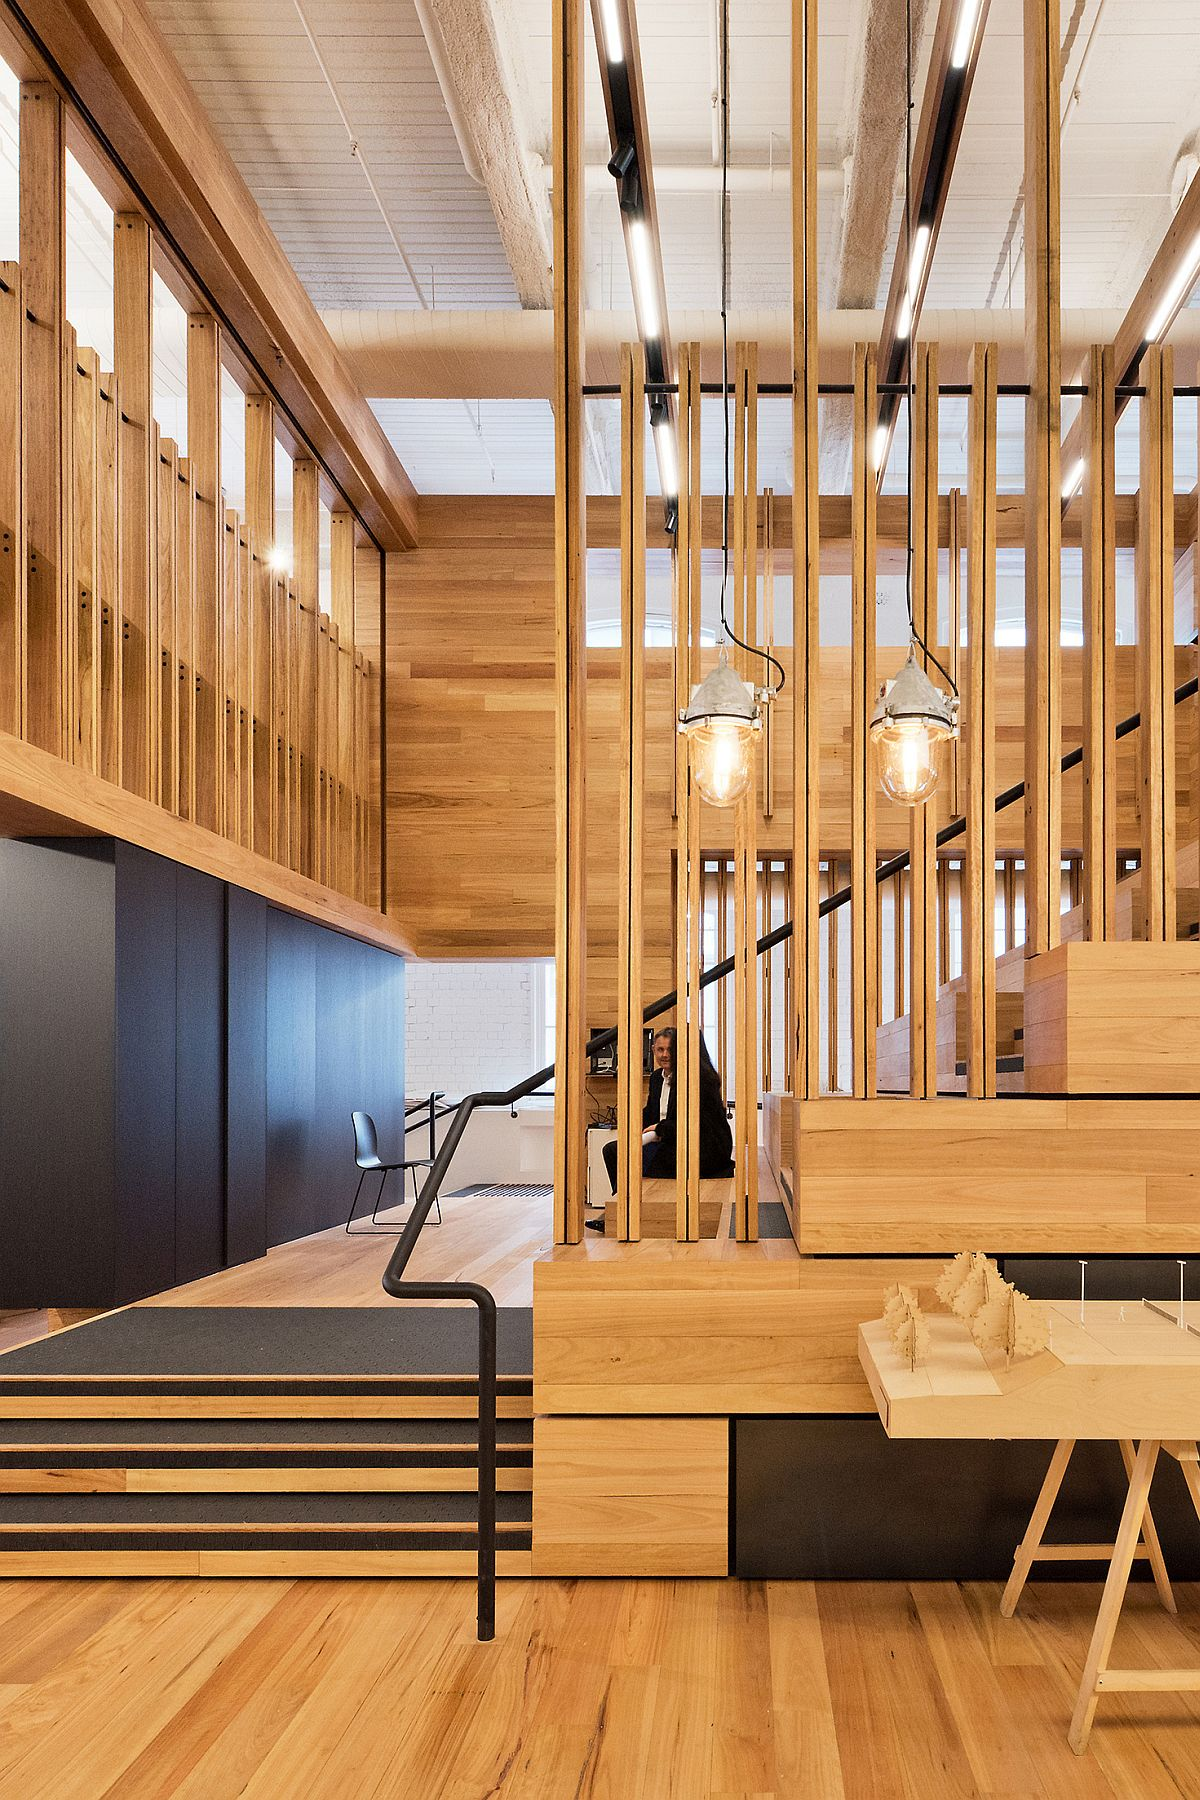 Wooden slats and a high ceiling give the office a modern industrial look